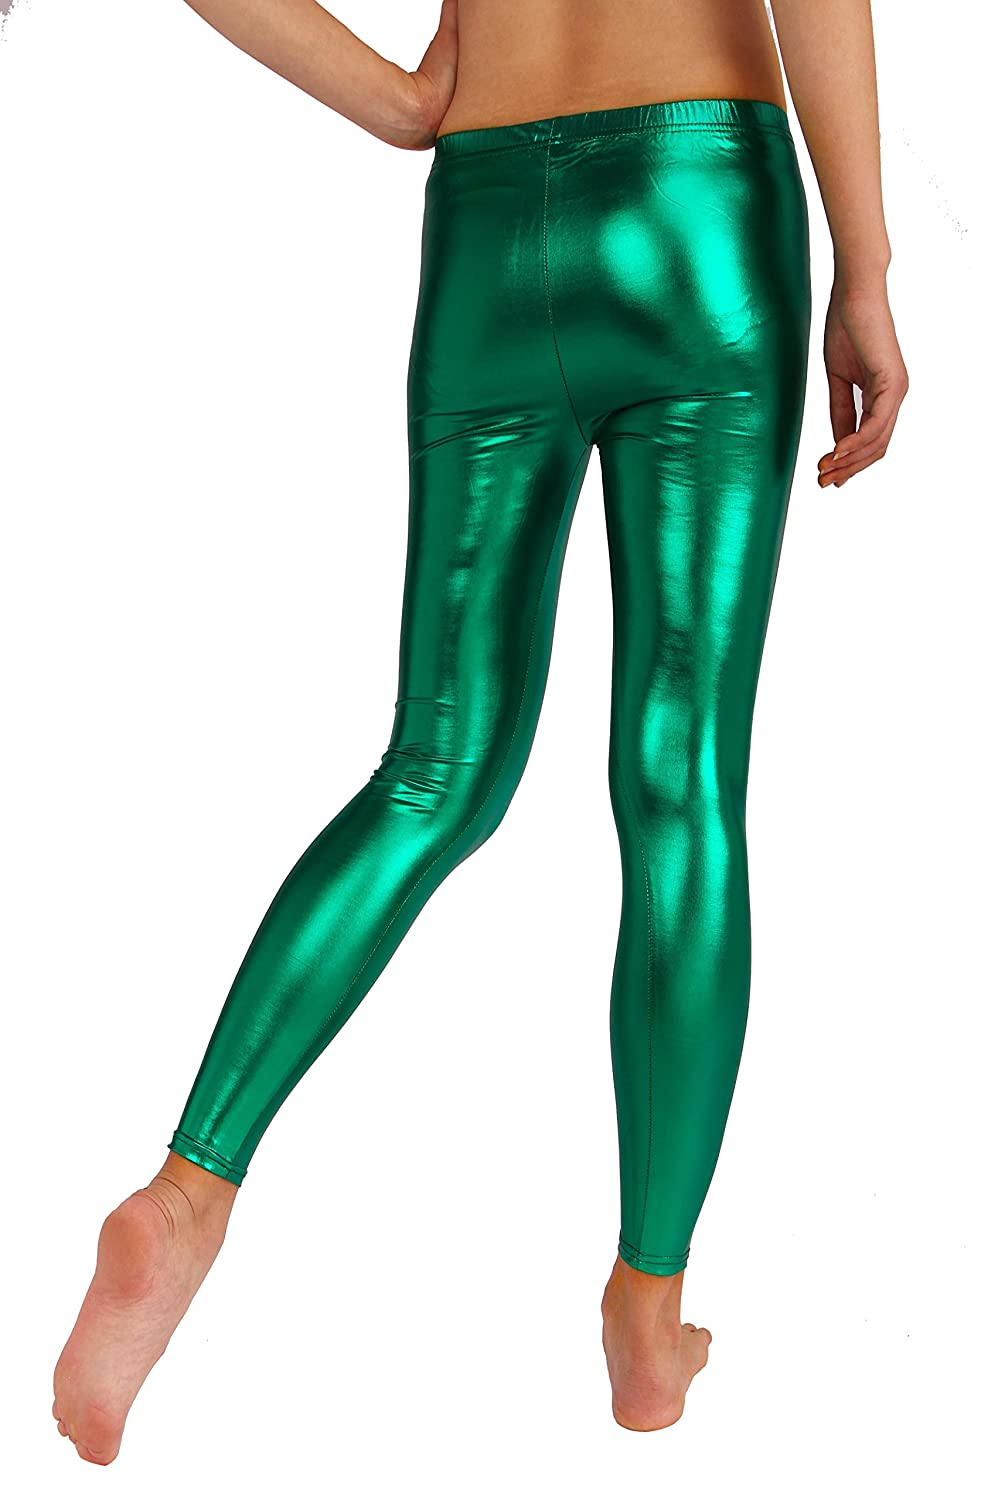 479e67febe4 Material  90% Polyester  10% Spandex. With a wide variety of colors to  choose from